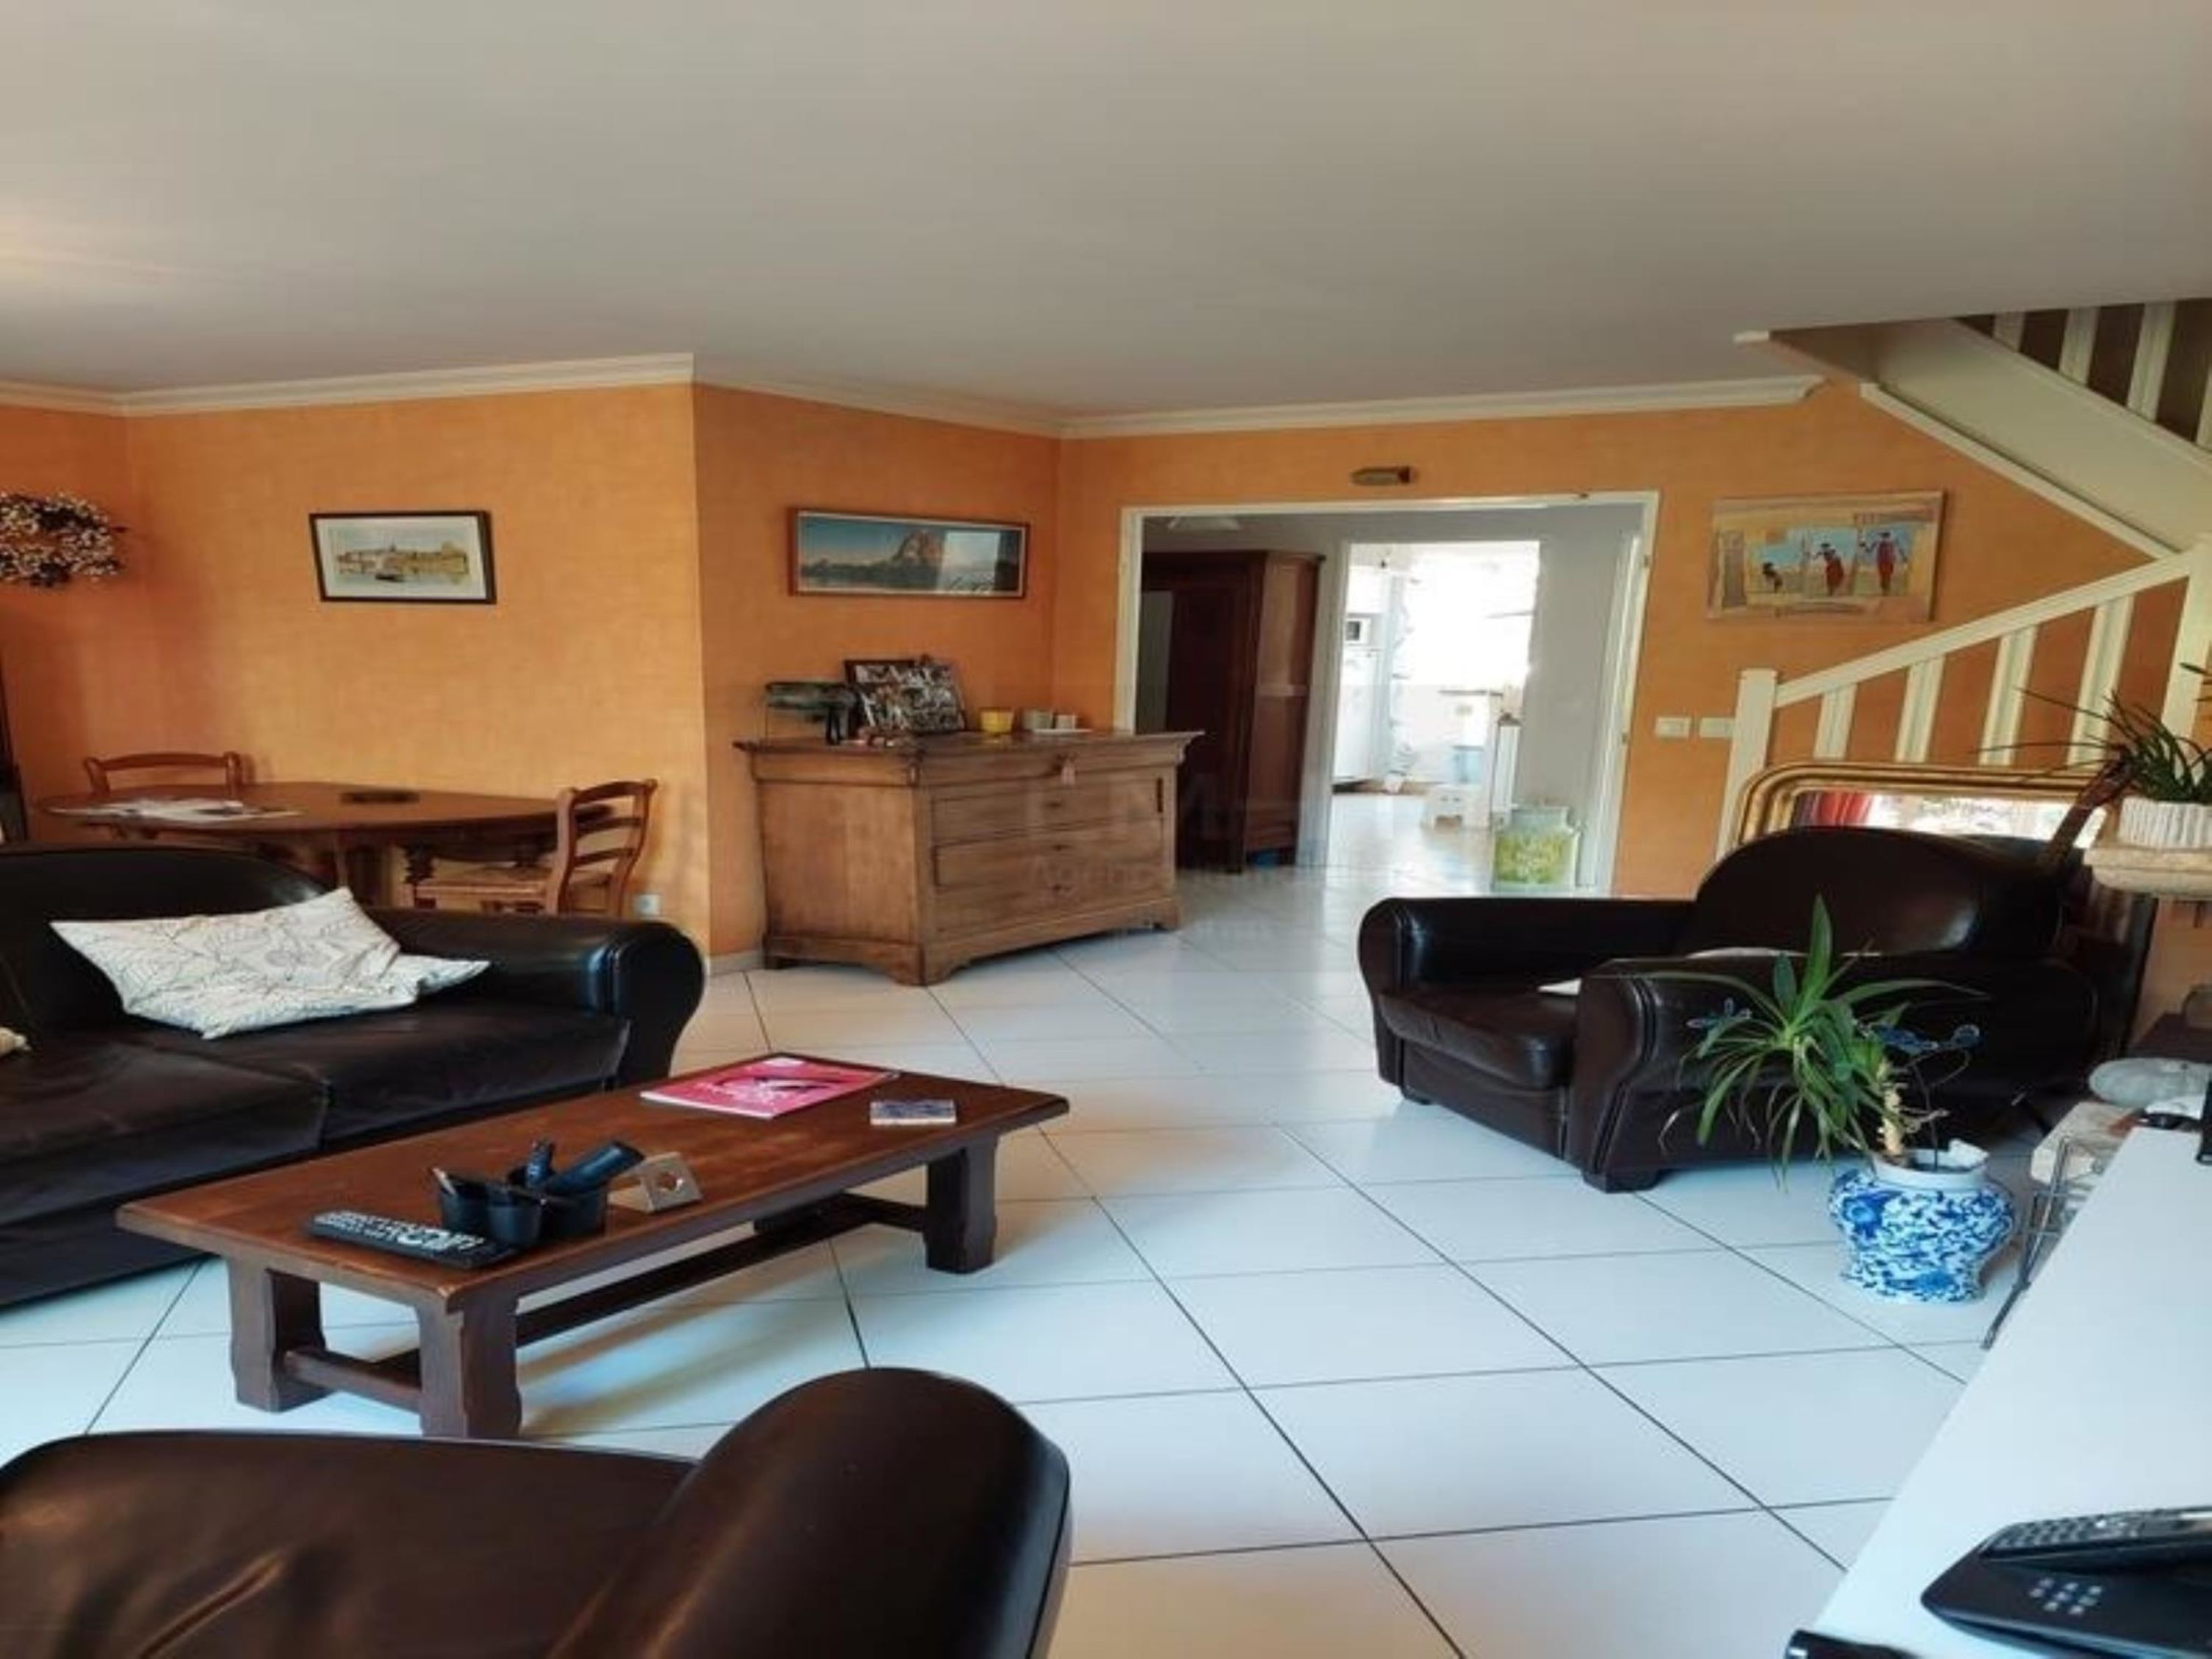 agence immobilière sevres 92 le chesnay 78 achat vente location appartement maison immobilier LMHT ANF EDLRGNBU